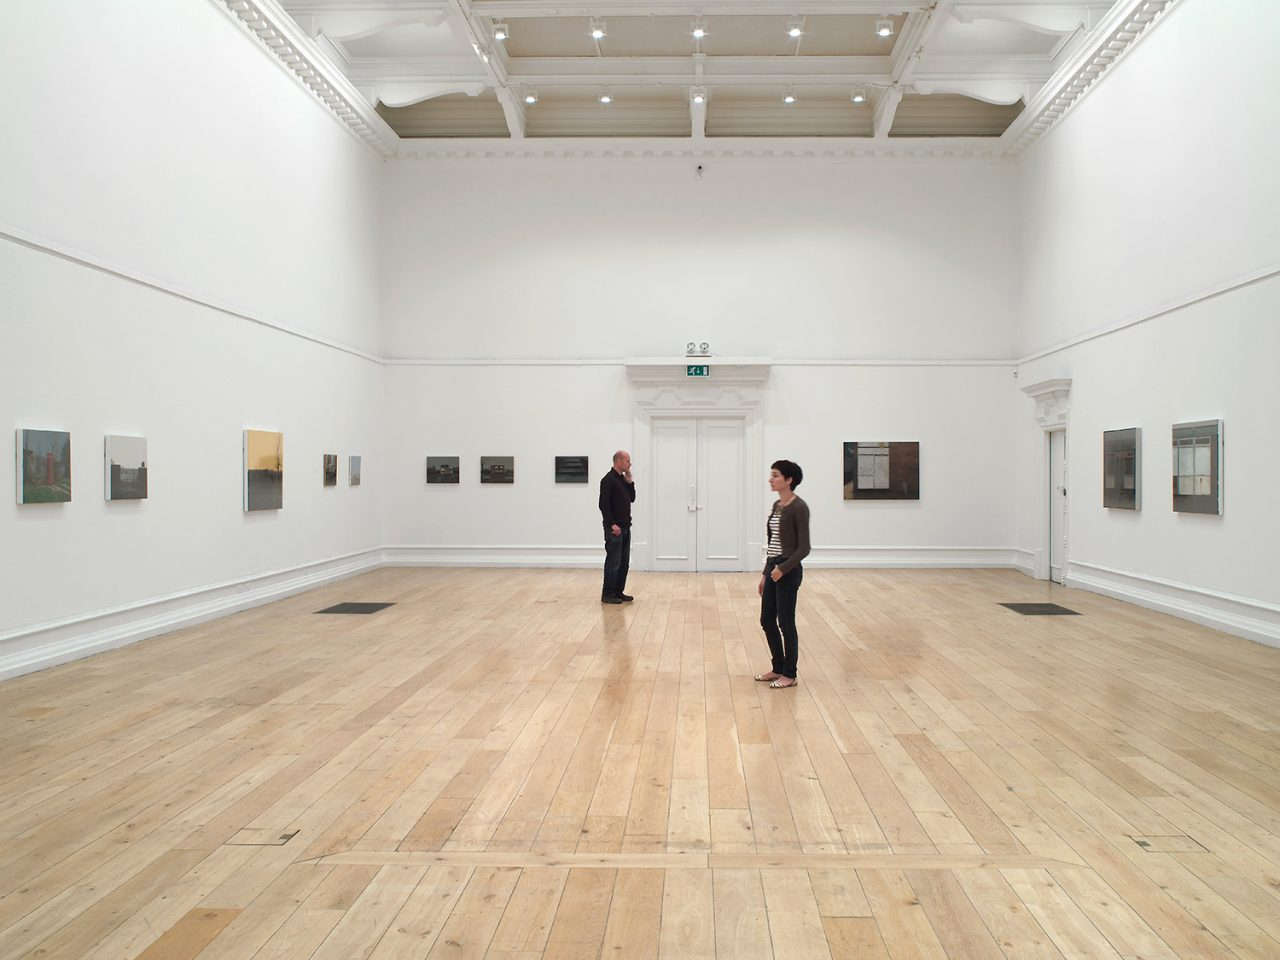 People visiting George Shaw's 2011 exhibitionThe Sly and Unseen Day in the Main Galleries. Photo: Andy Keate